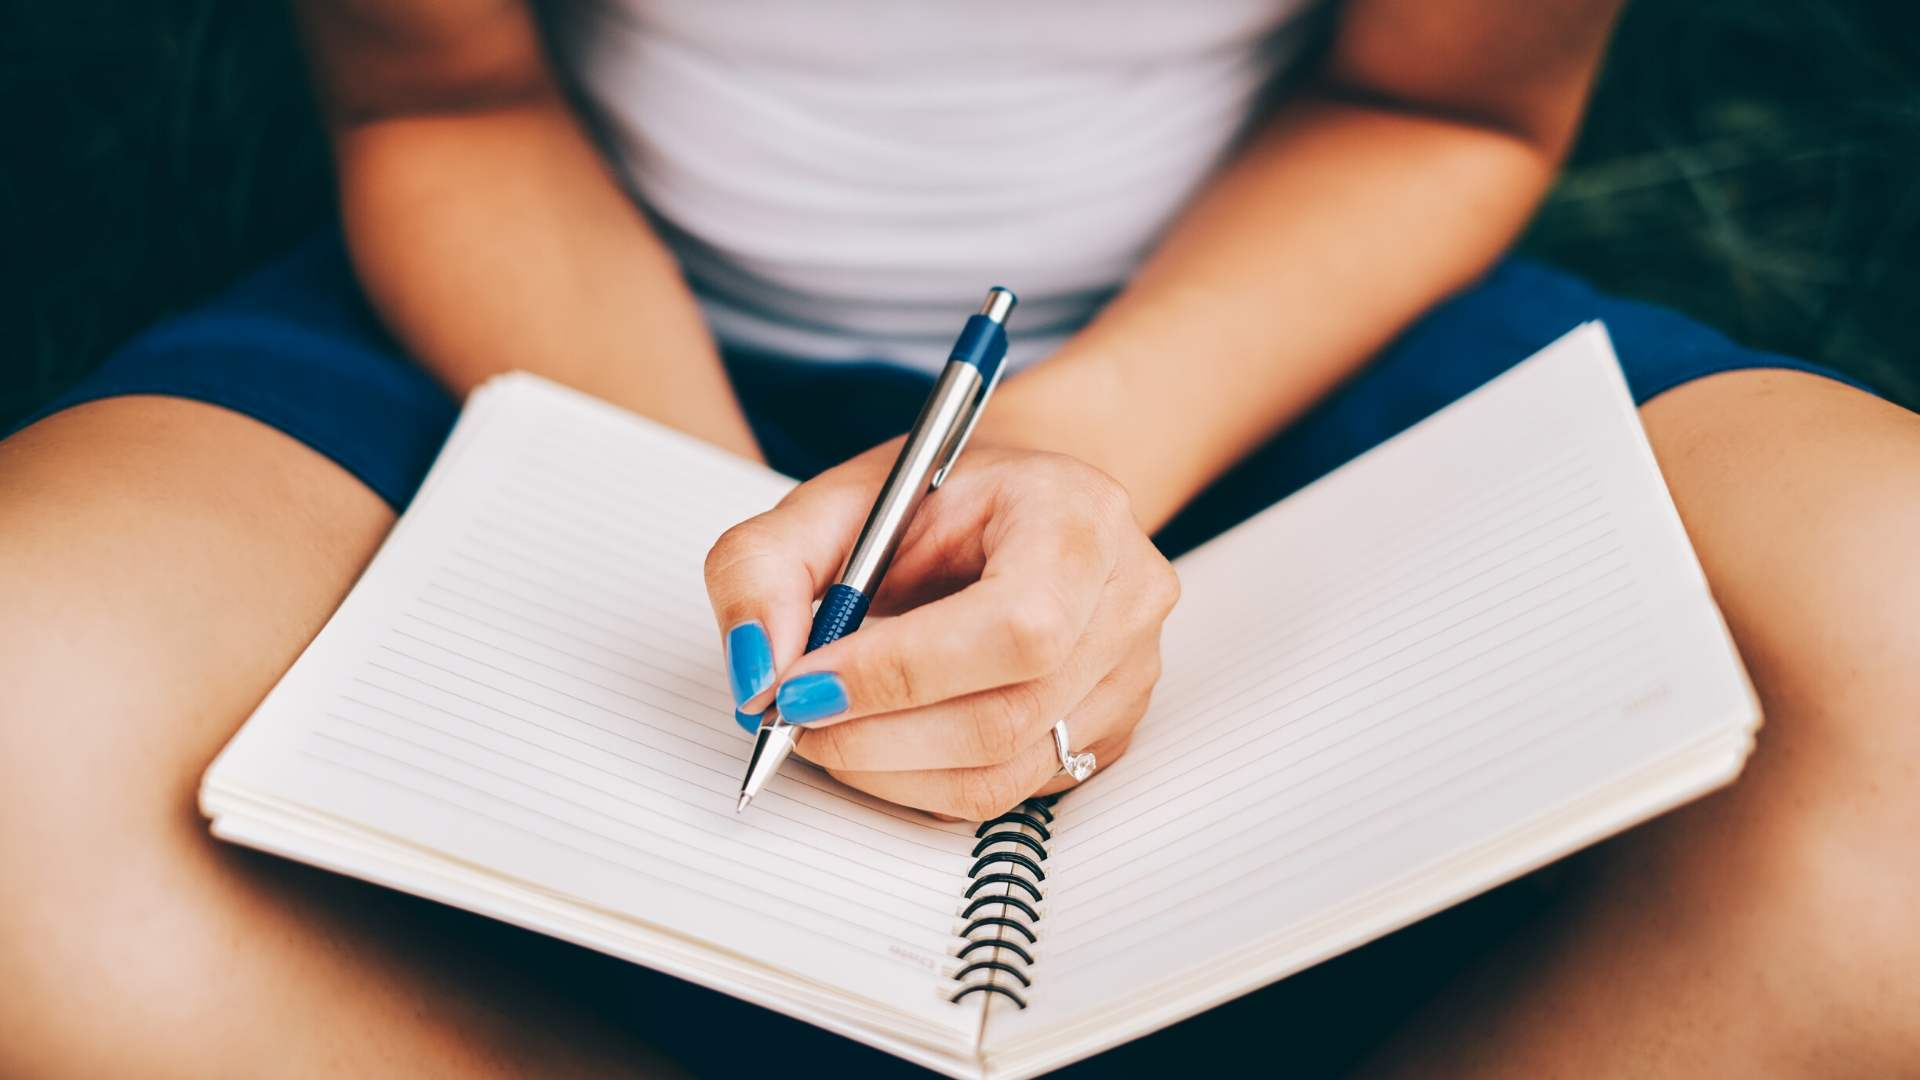 How to keep a yoga journal